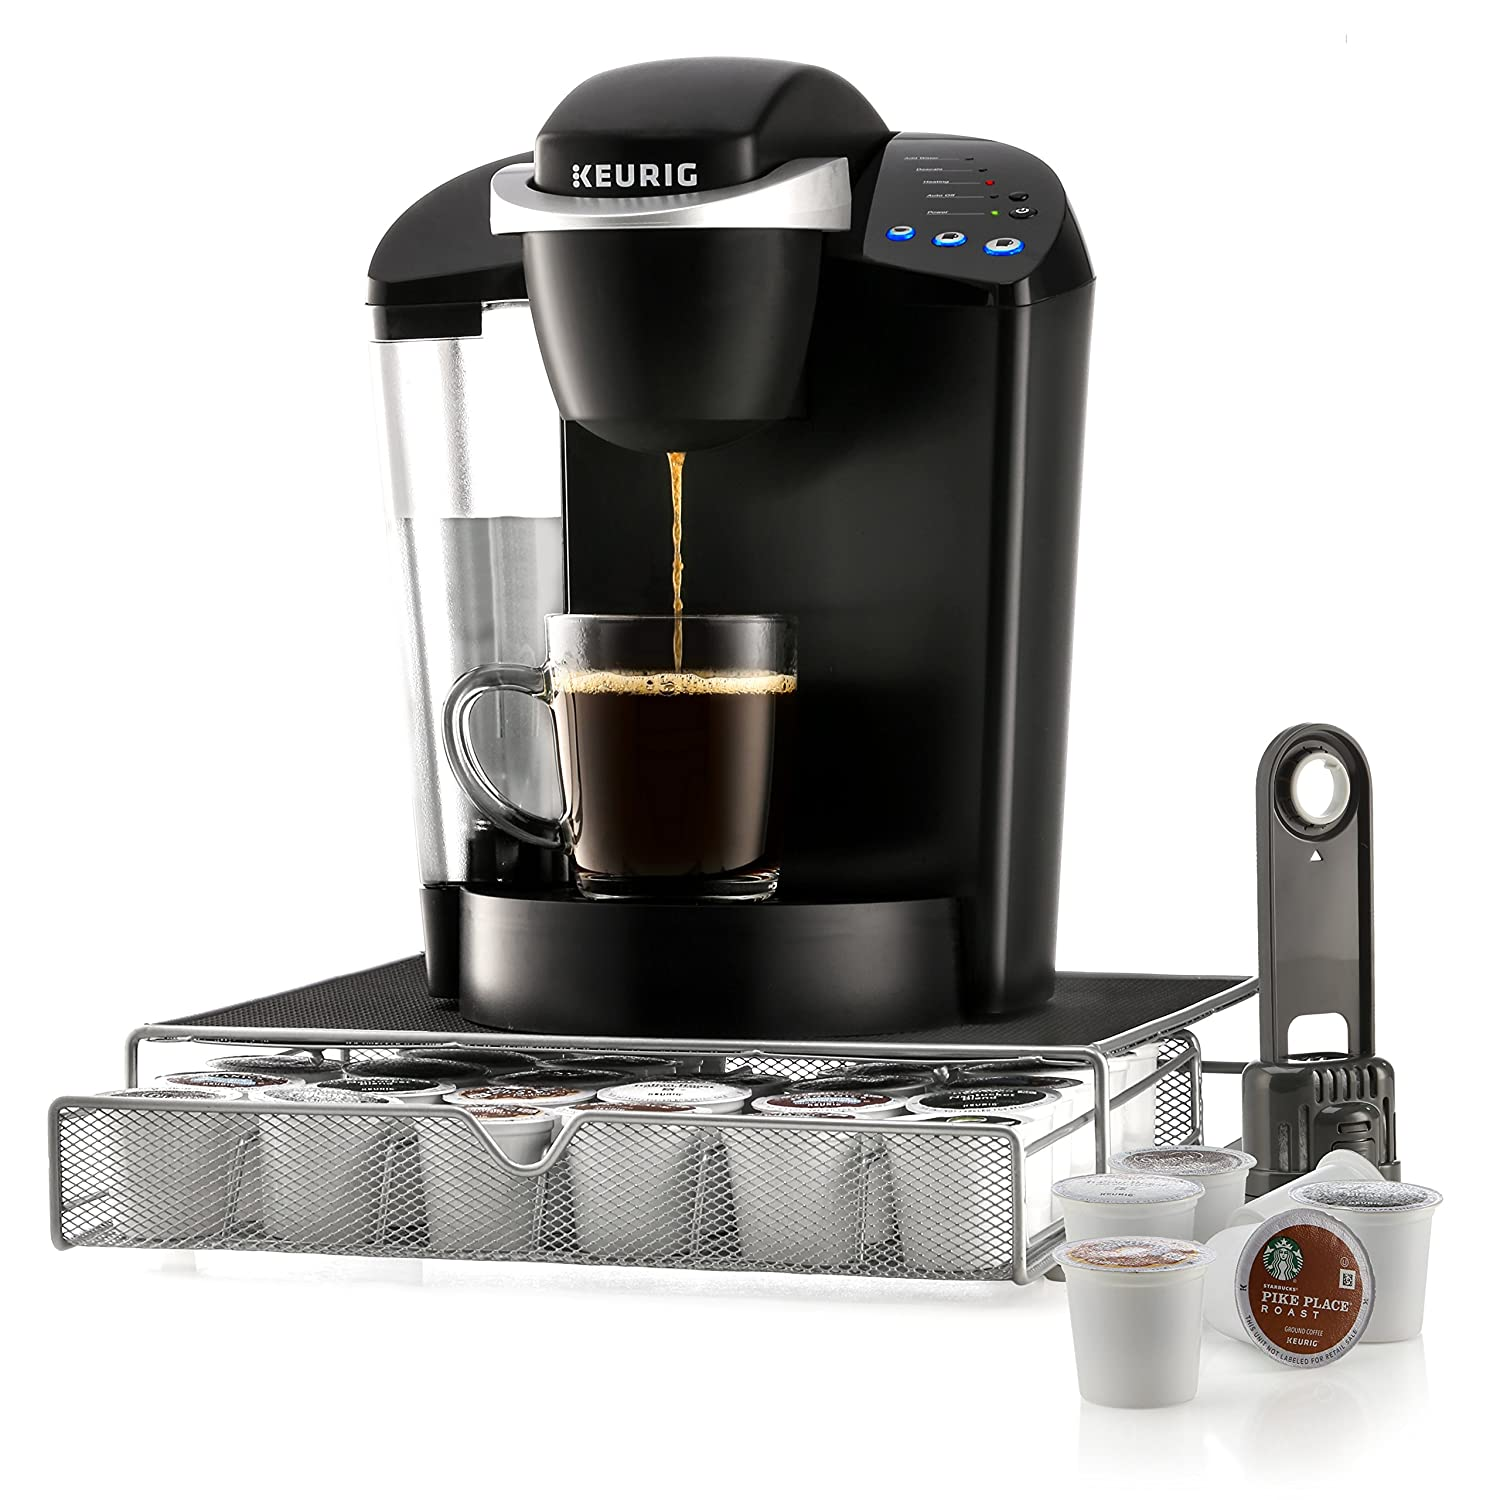 Keurig Coffee Maker Not Powering Up : Are you still looking for the perfect Father s Day gift? Look no further. I ve got it for you ...